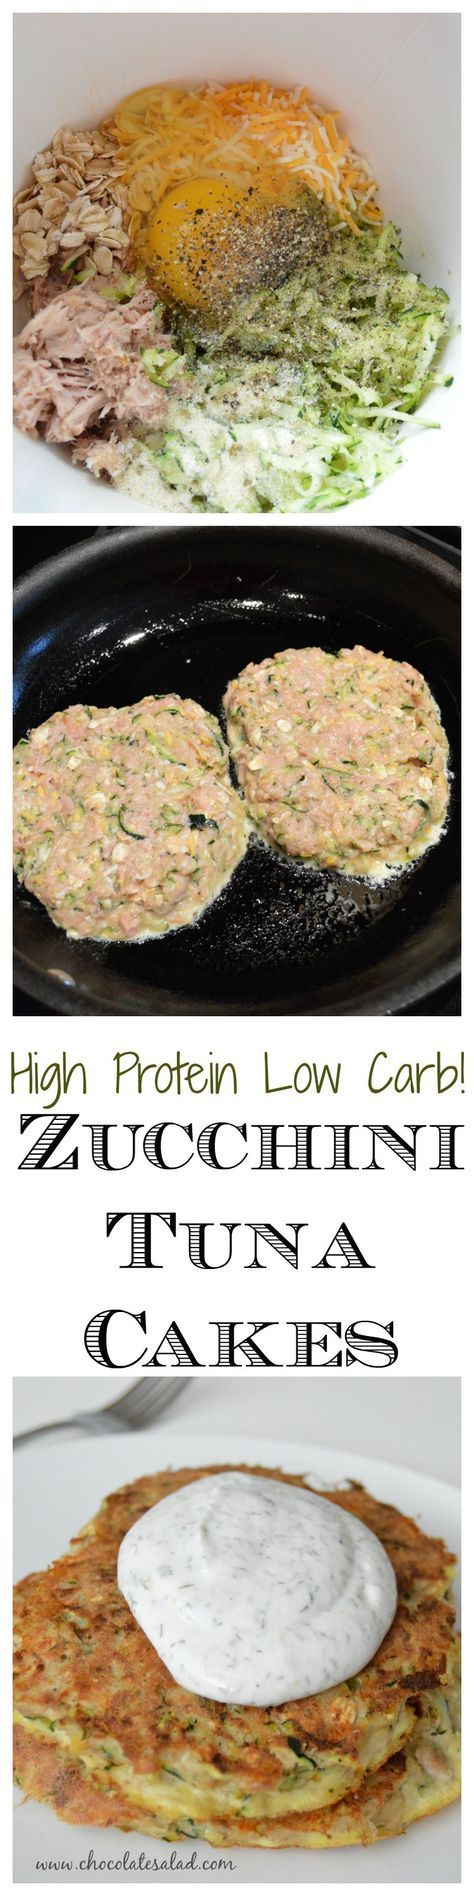 Easy meal or snack for zuuchini season. Only 280 calories and 34 g protein! Zucchini Tuna Cakes on chocolatesalad.com